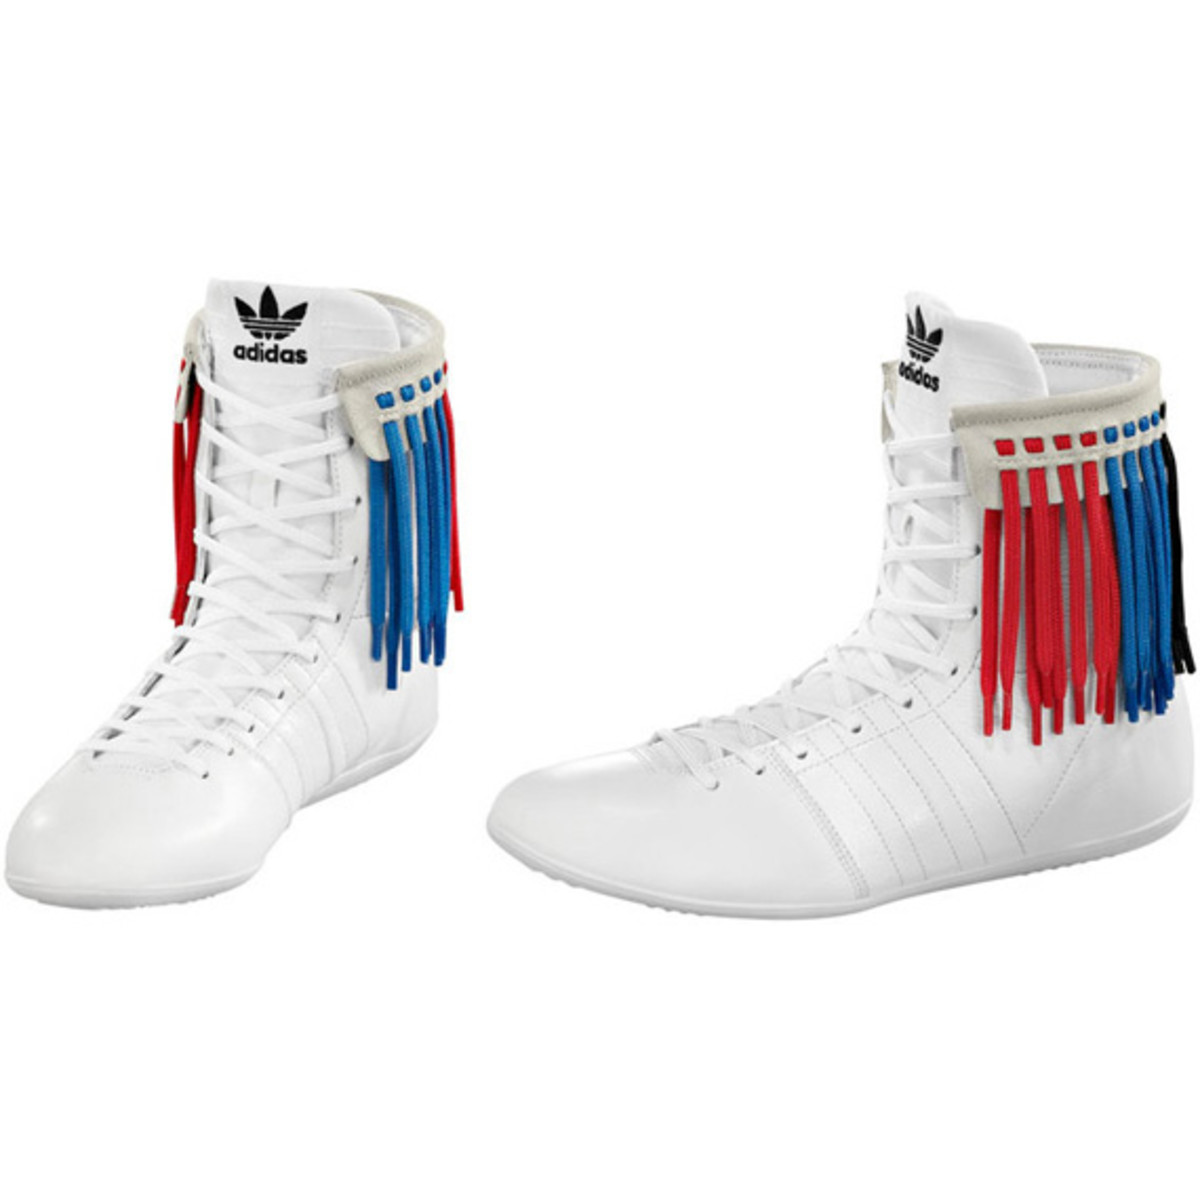 adidas-originals-fw2010-footwear-relaces-12